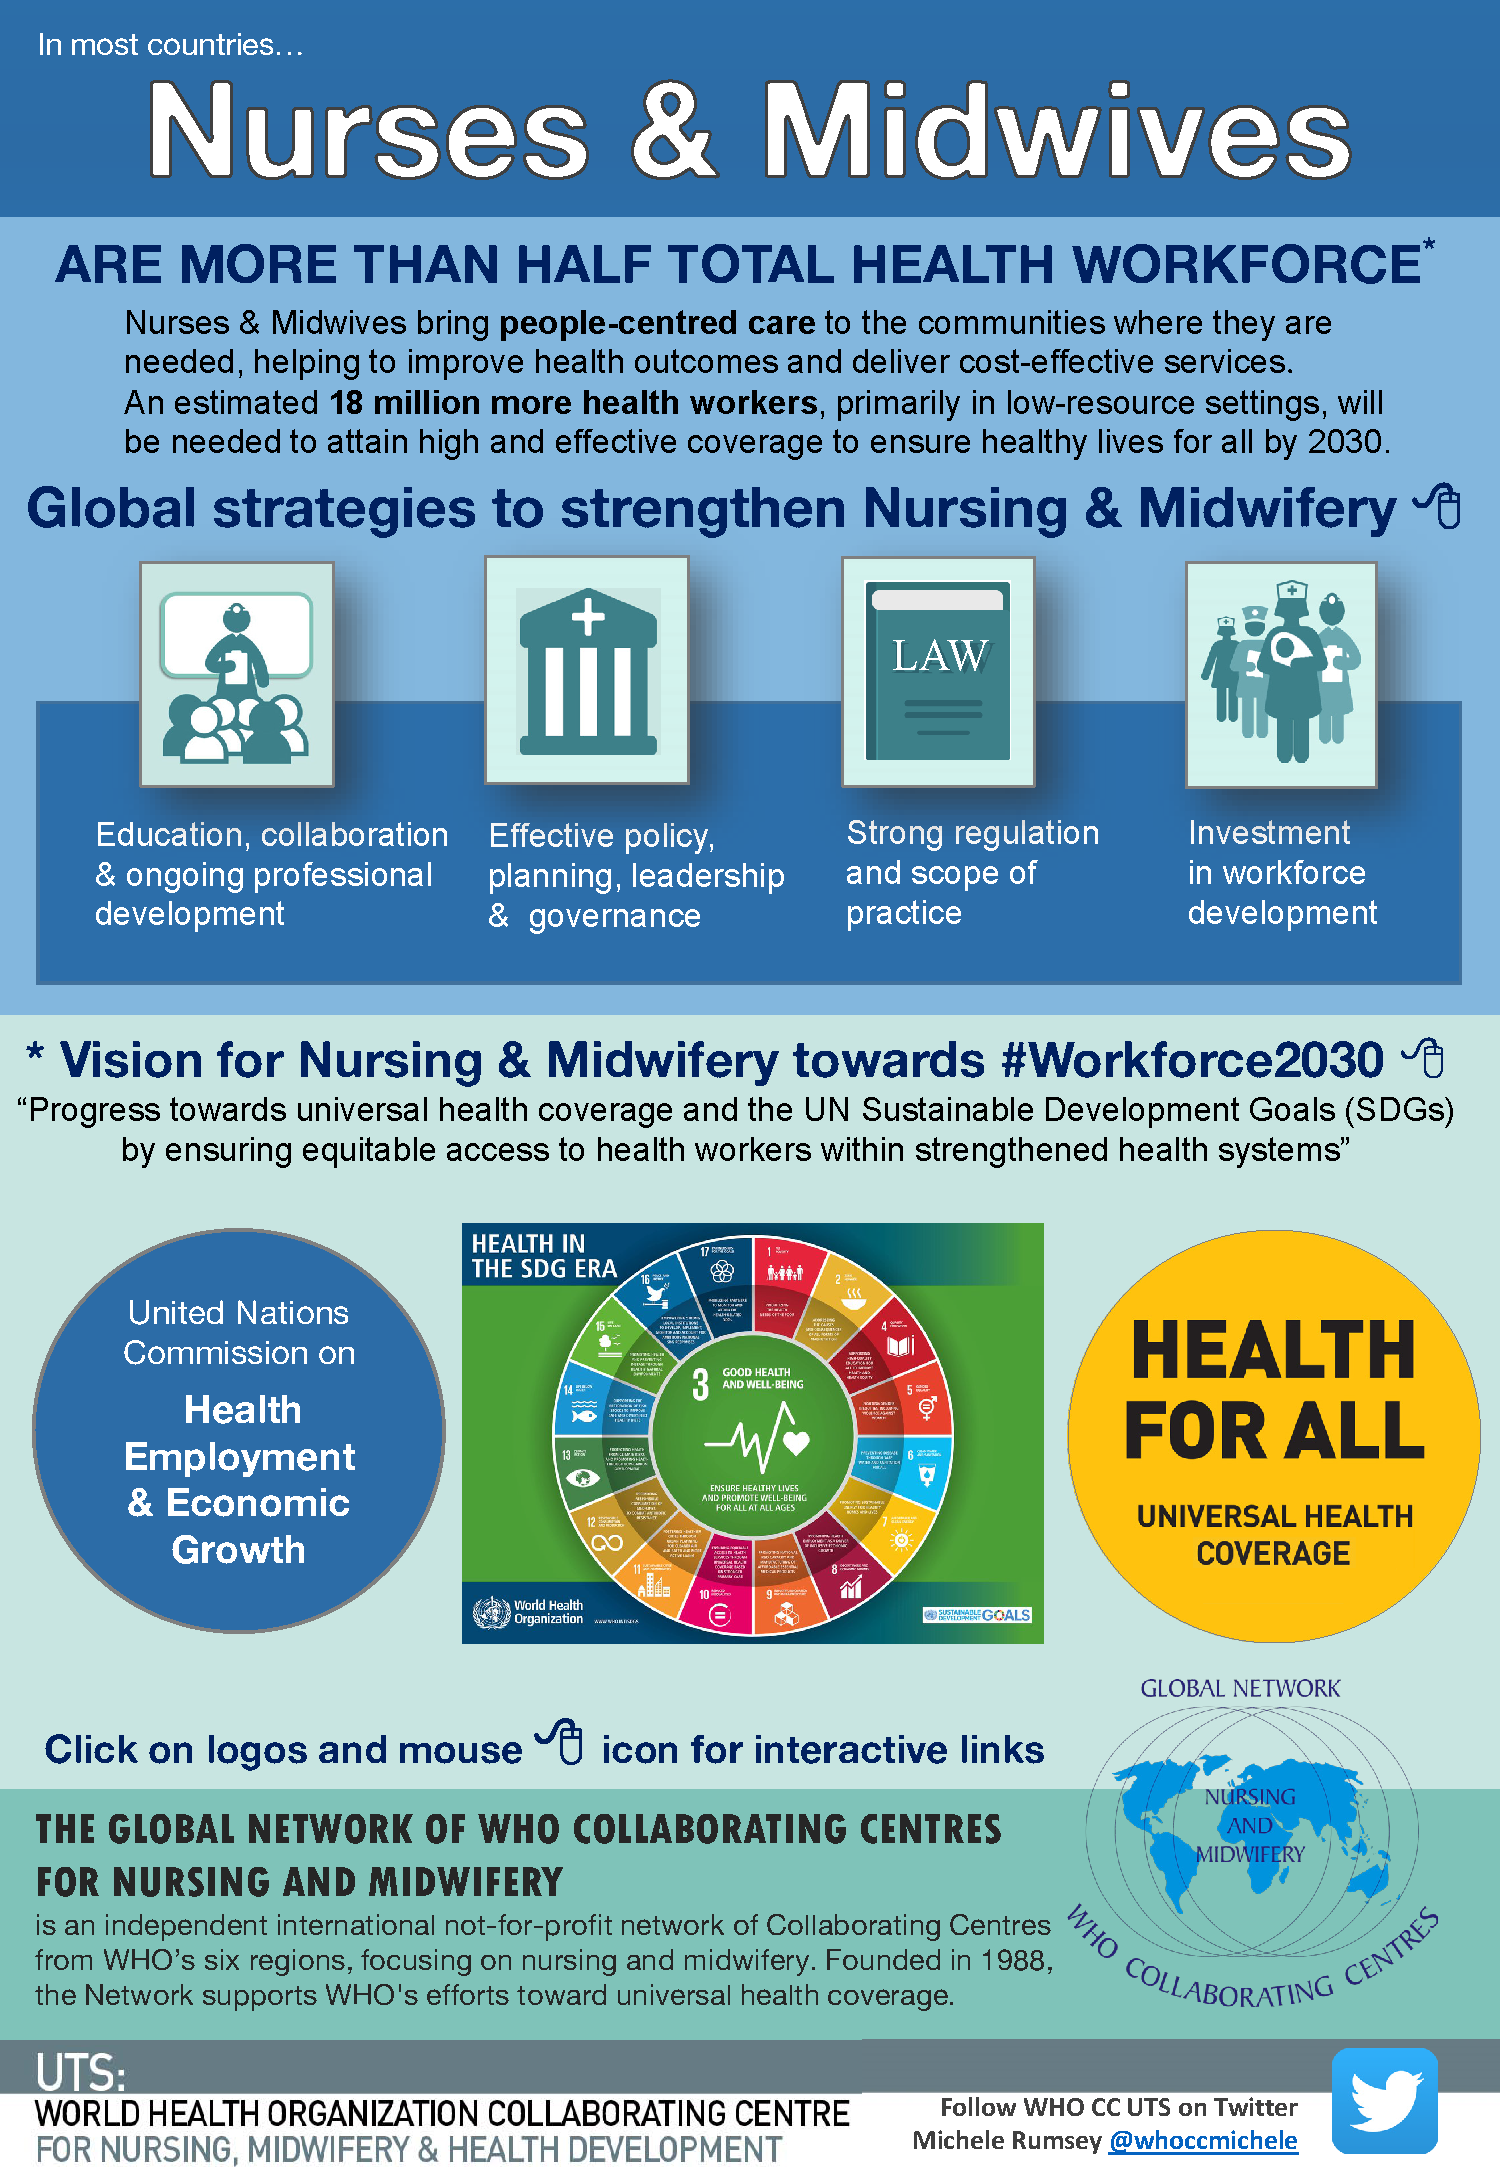 Global Strategies to Strengthen Nurses and Midwives